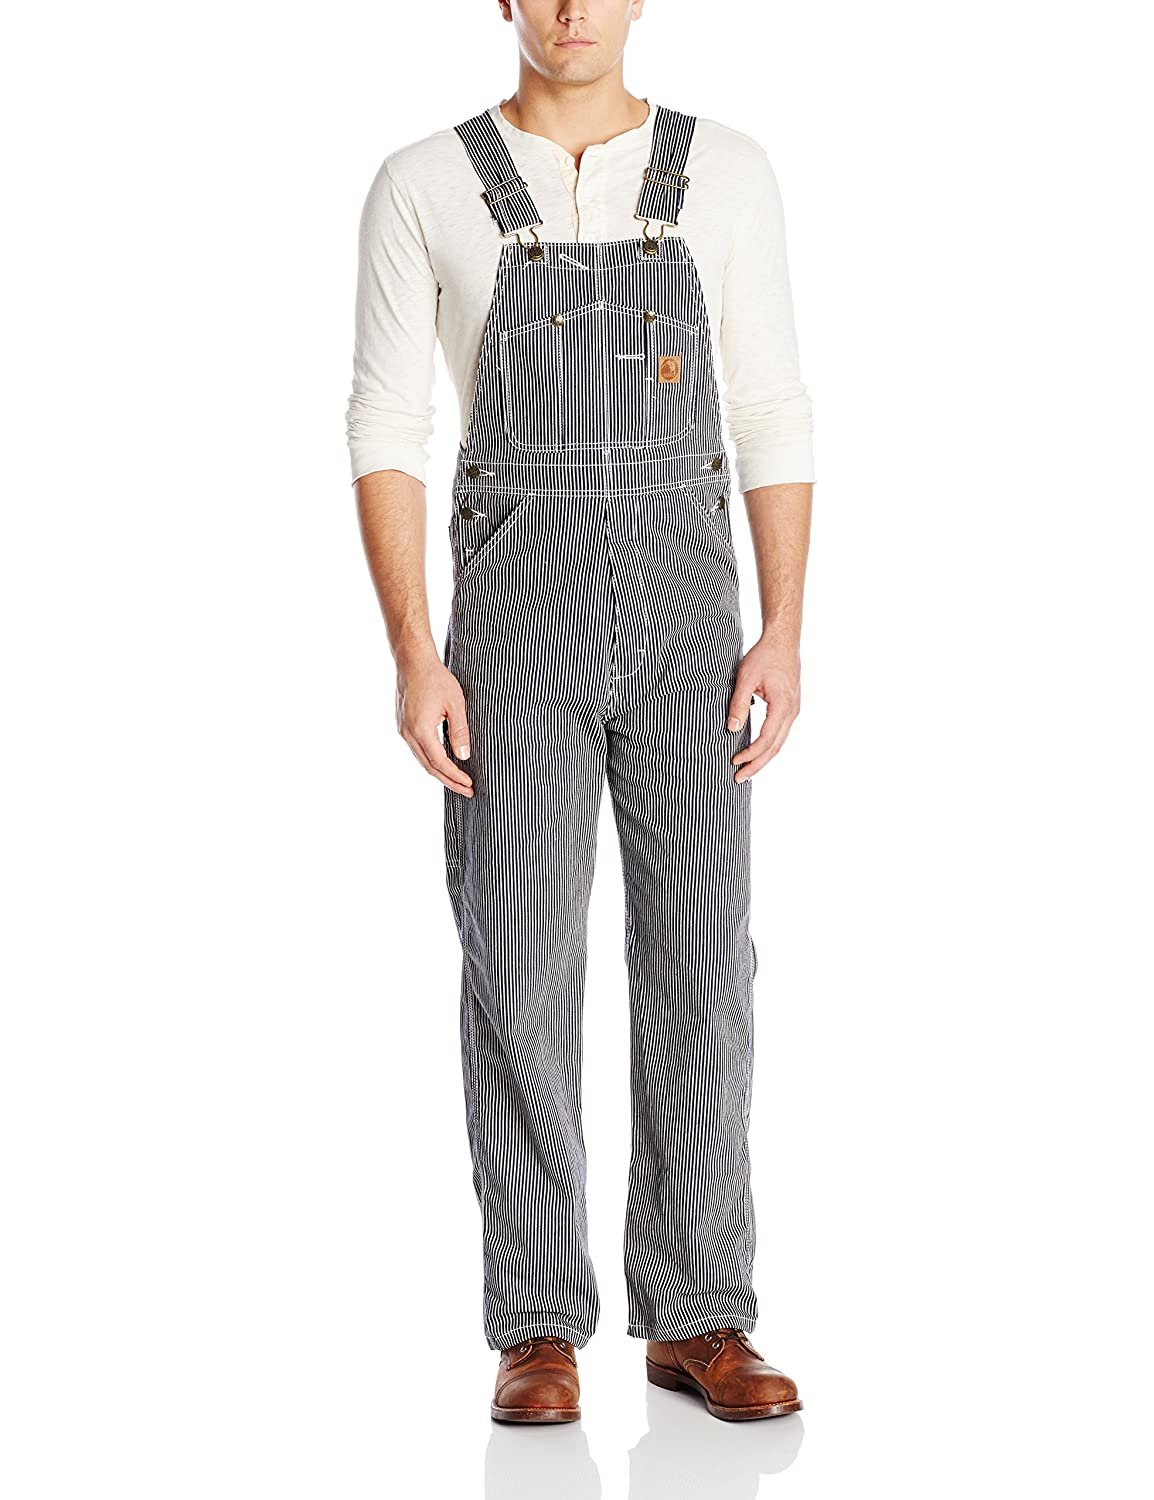 Men's Vintage Workwear – 1920s, 1930s, 1940s, 1950s Berne Mens Original Unlined Bib Overall $49.99 AT vintagedancer.com